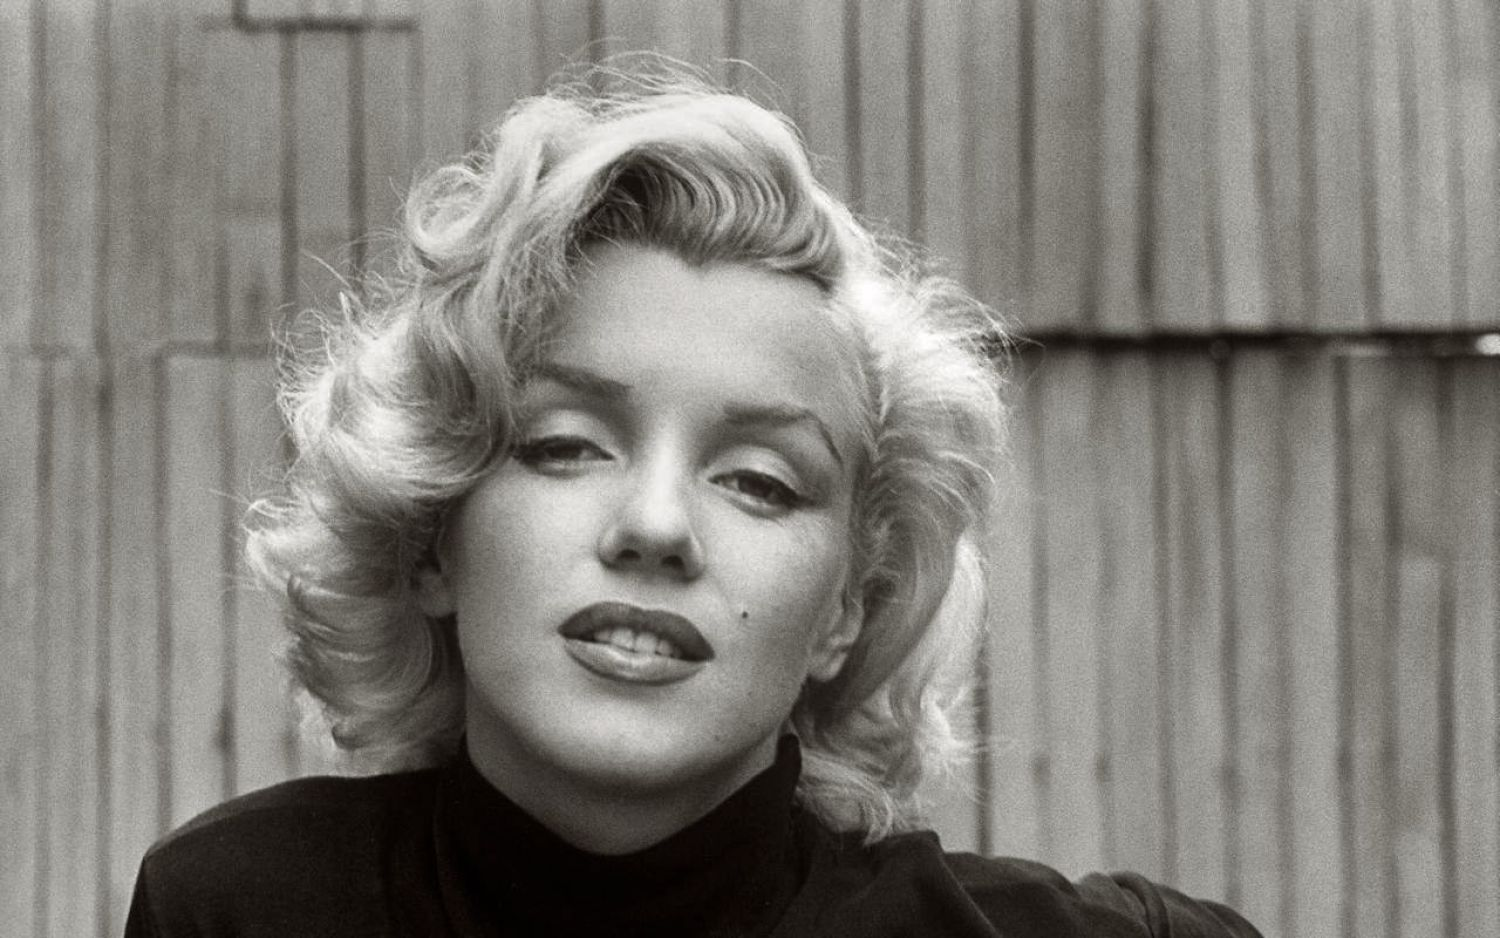 vintage_usa_marilyn_monroe_historical_1280x1000_wallpaper_Wallpaper_2560x1600_www_wall321_com